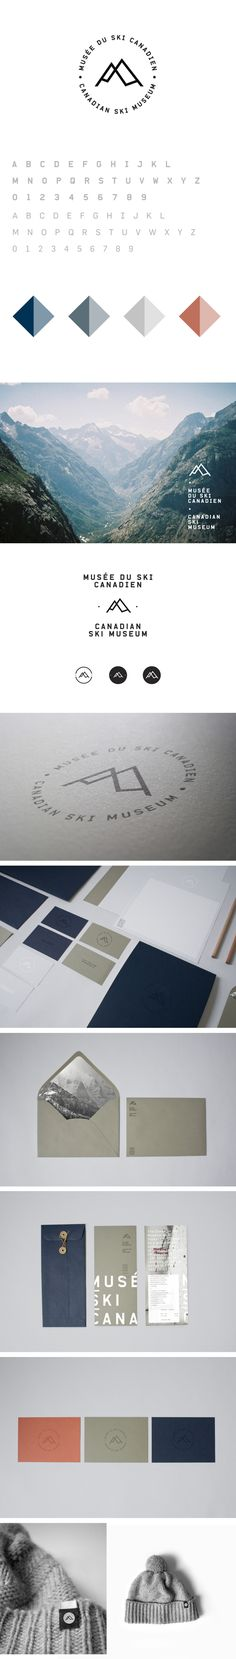 Musée du ski Canadien / Canadian Ski Museum on Branding Served Web Design, Design Logo, Brand Identity Design, Graphic Design Typography, Layout Design, Design Girl, Brand Design, Corporate Design, Editorial Design